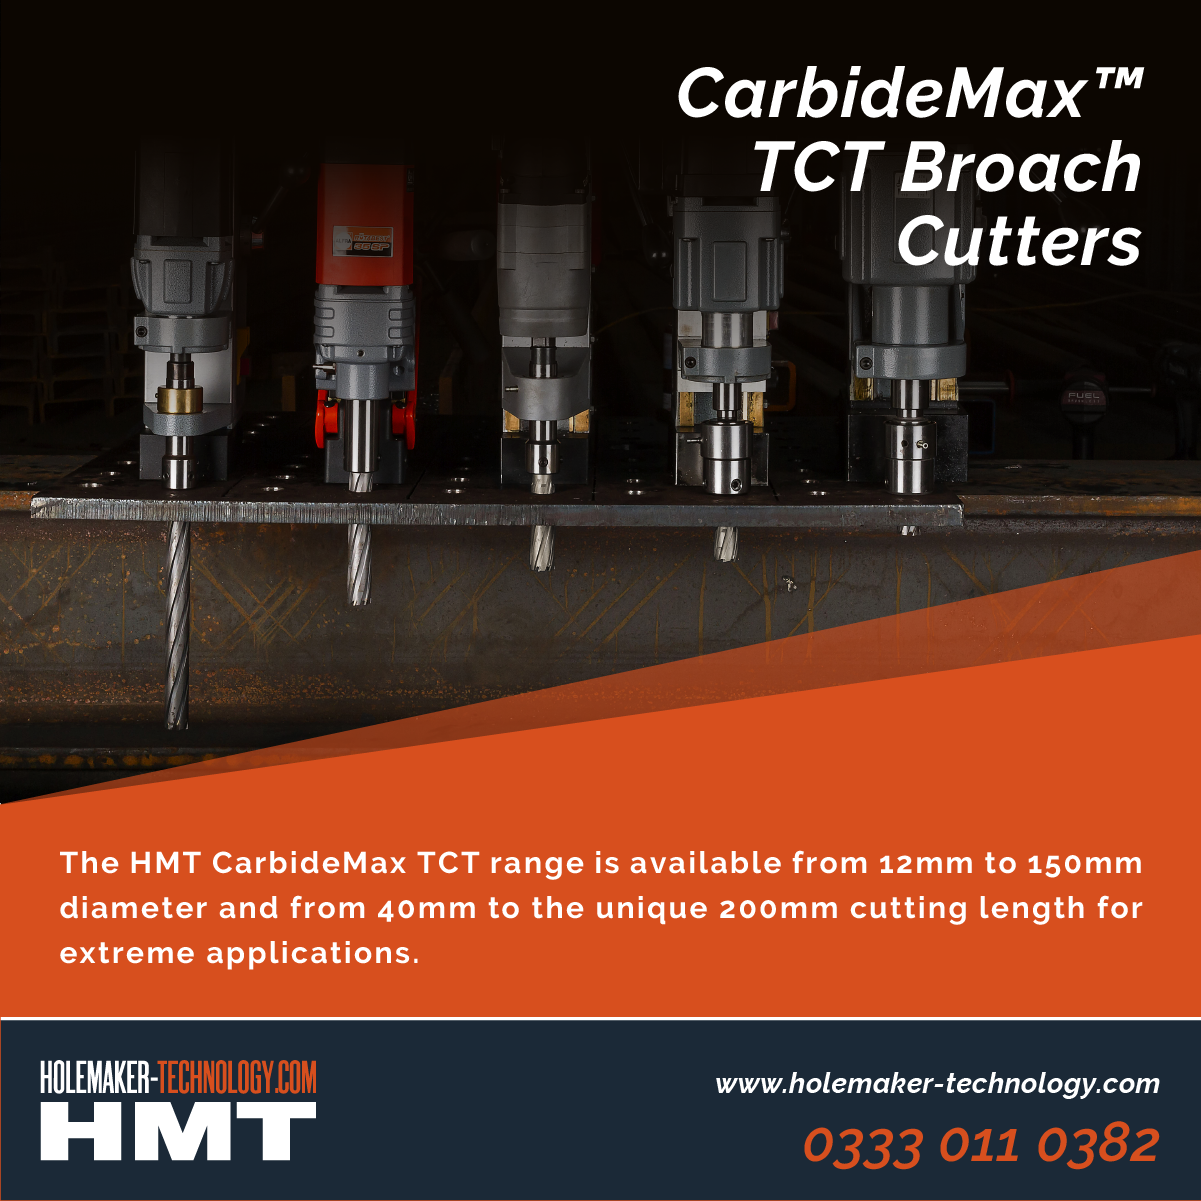 HMT CarbideMax